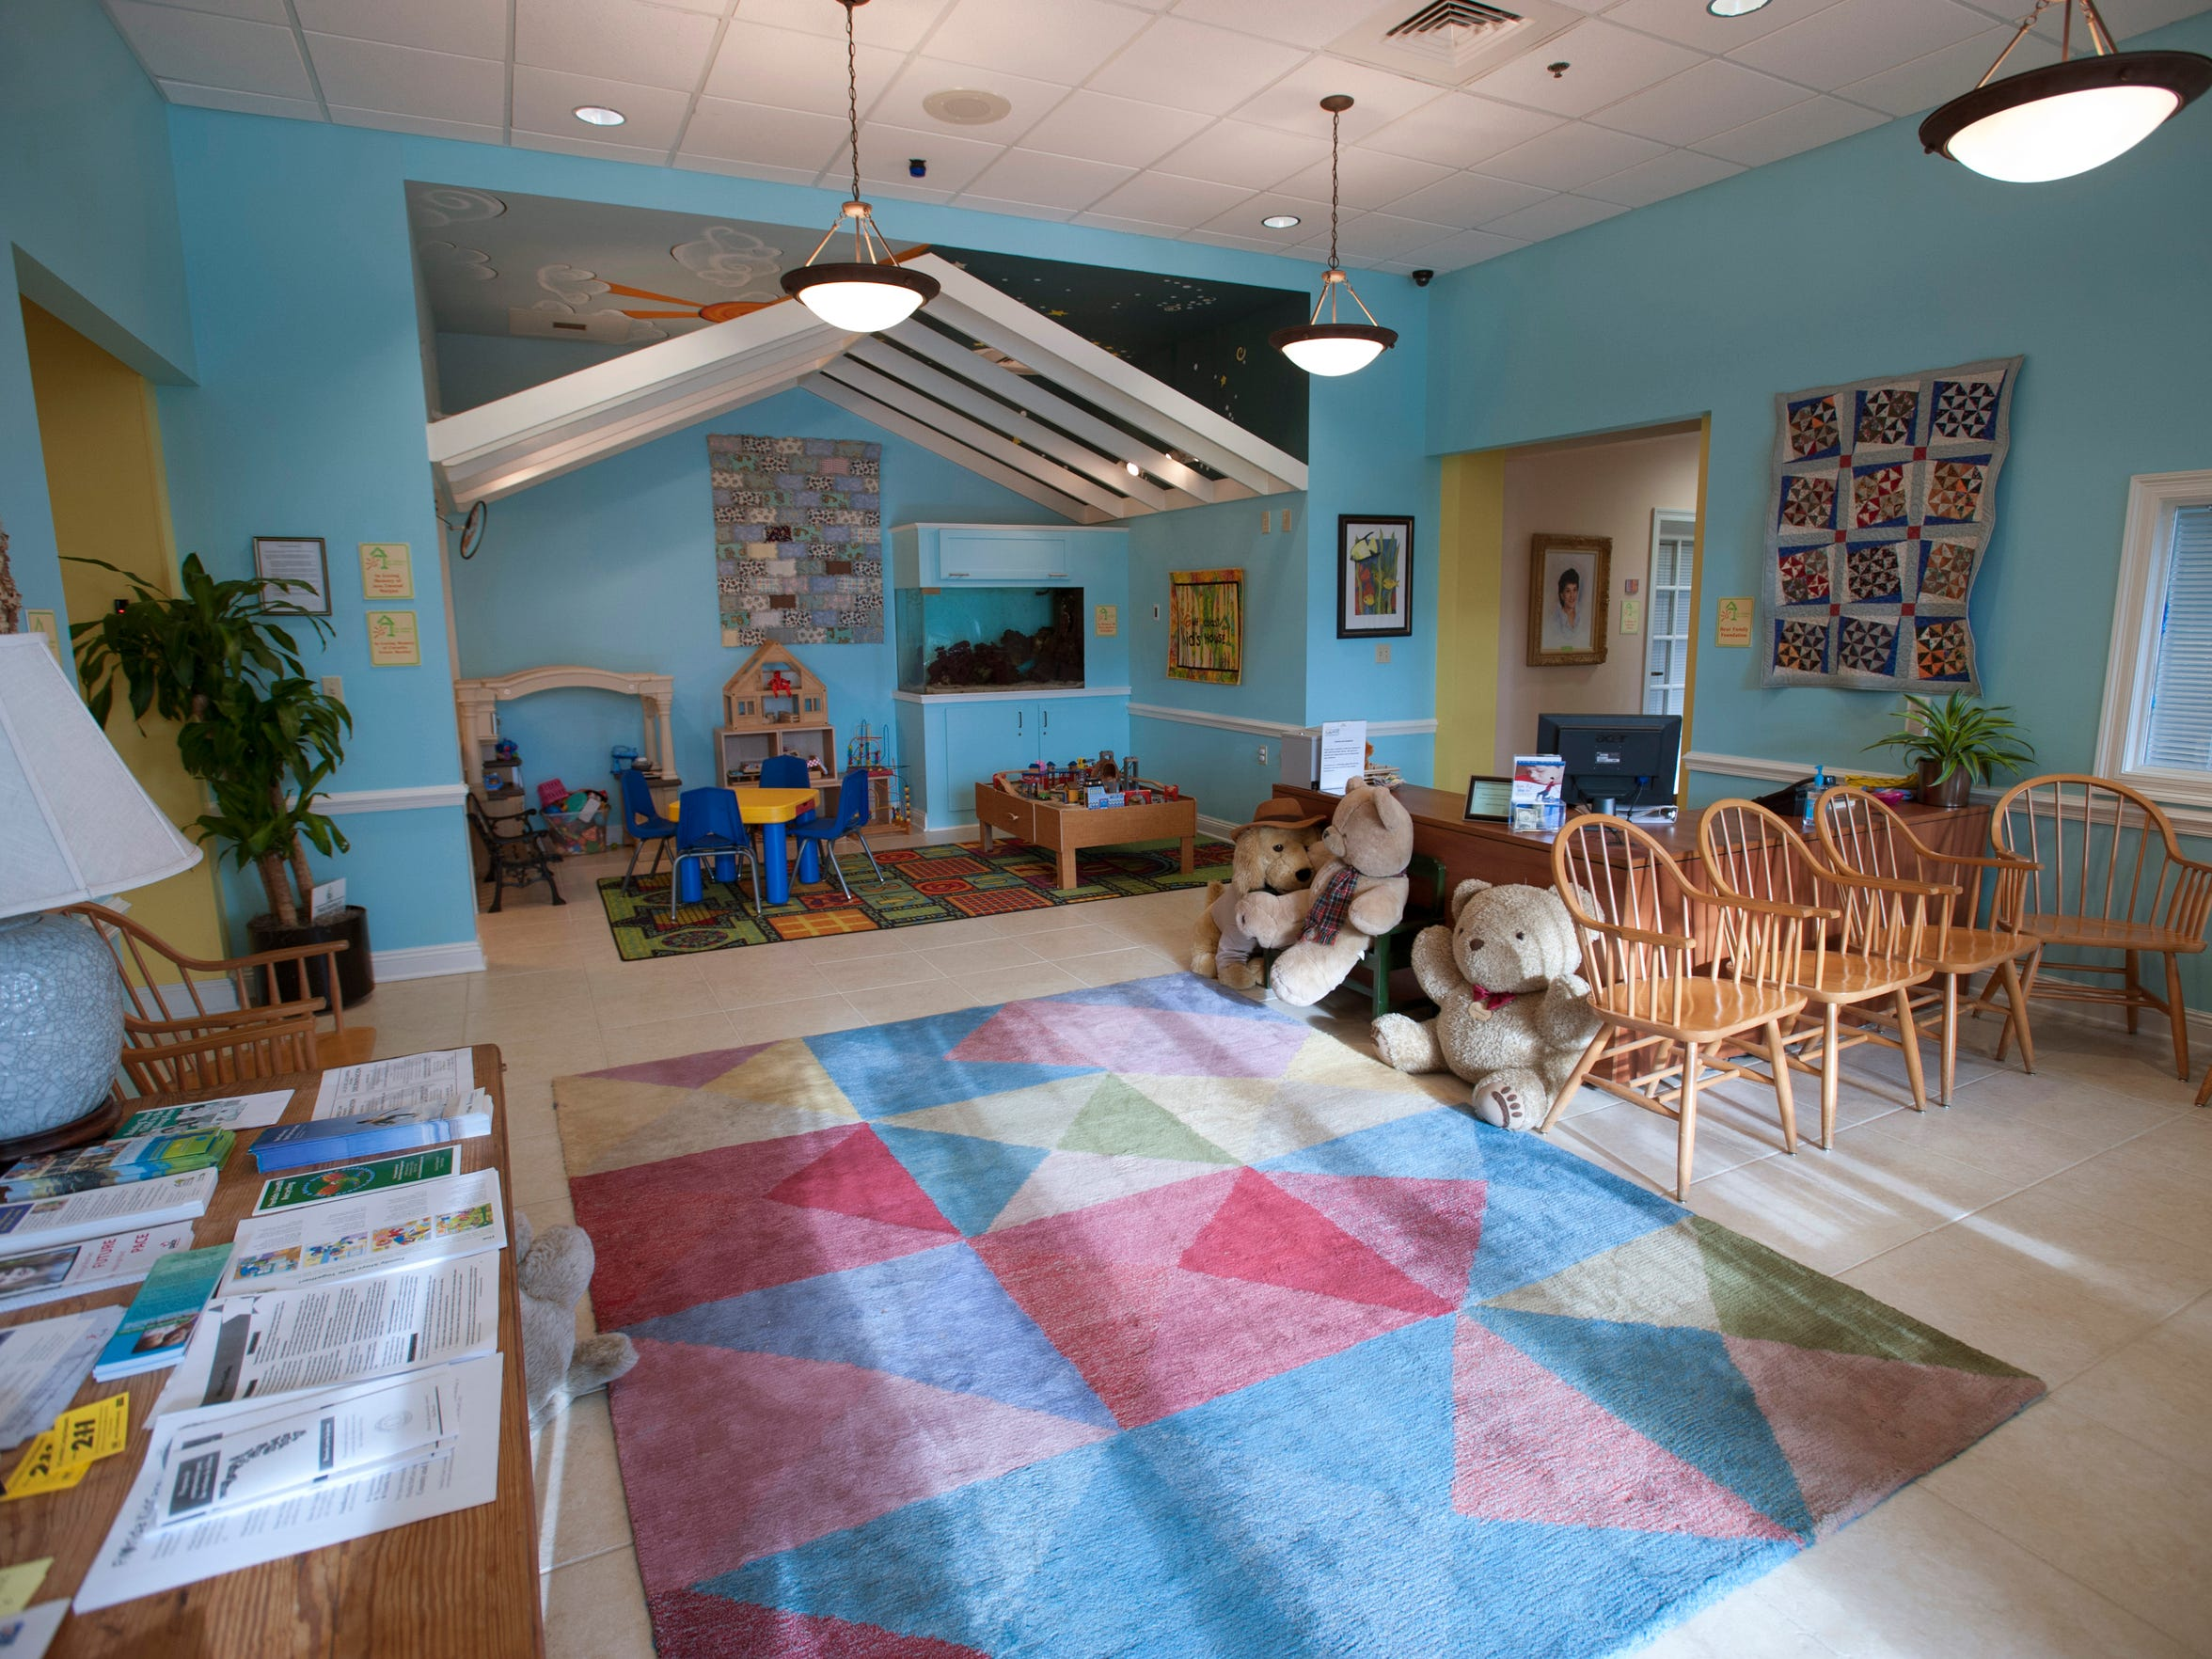 The lobby area of the Gulf Coast Kid's House is a meant to be inviting and comforting to children.